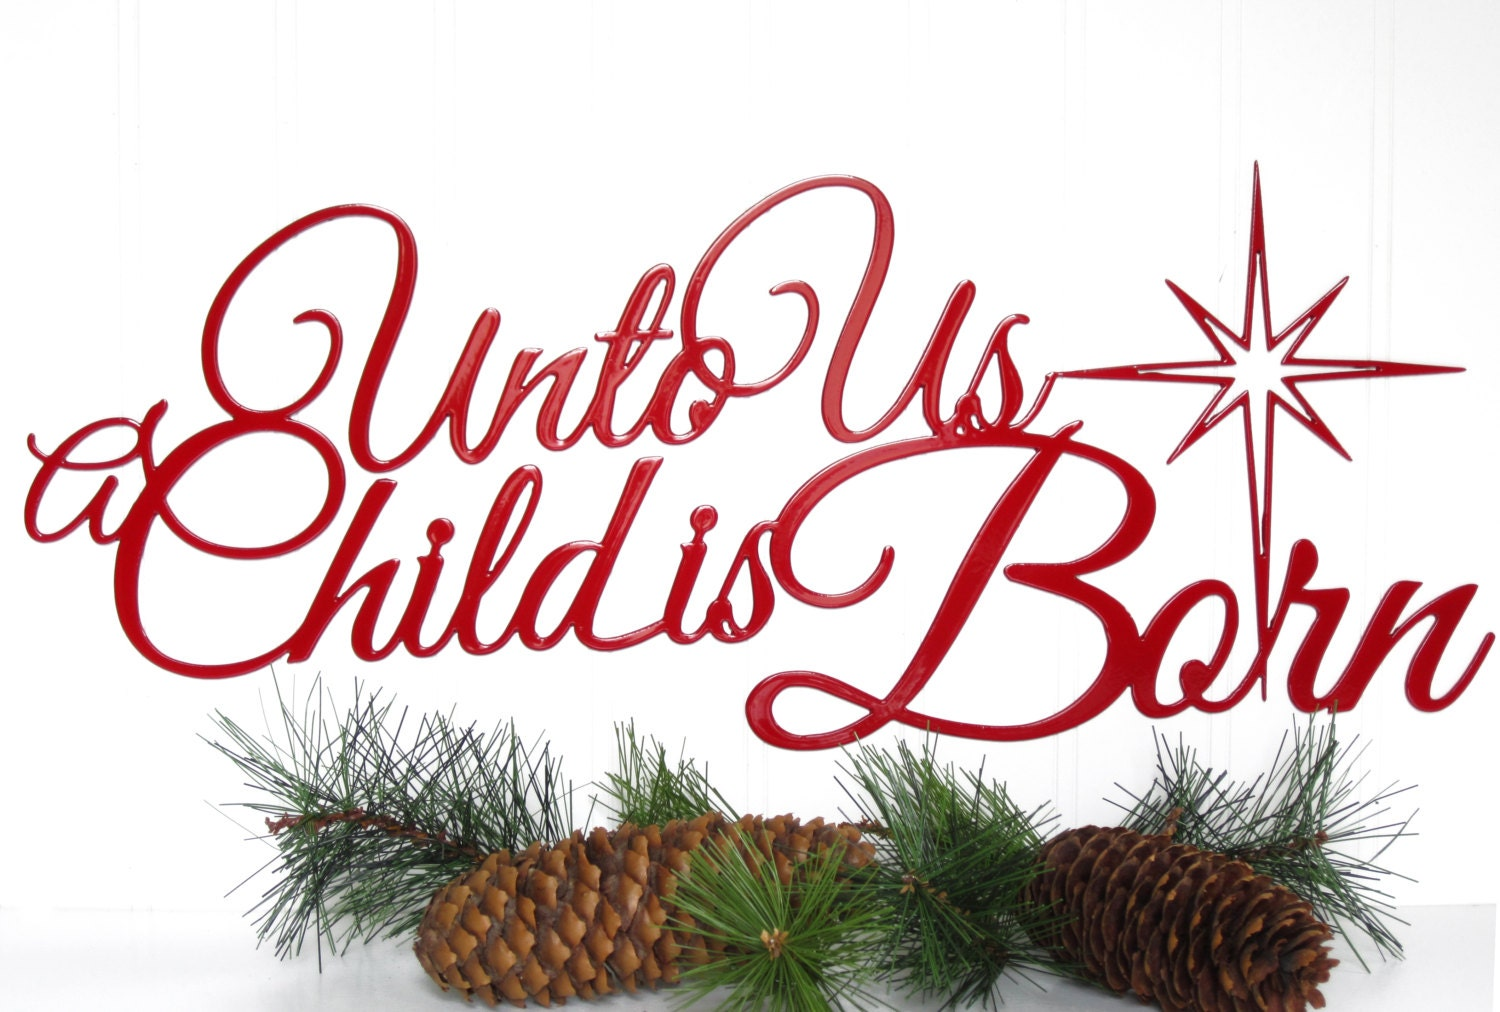 Unto Us A Child Is Born Christmas Metal Sign Red 19.5x8